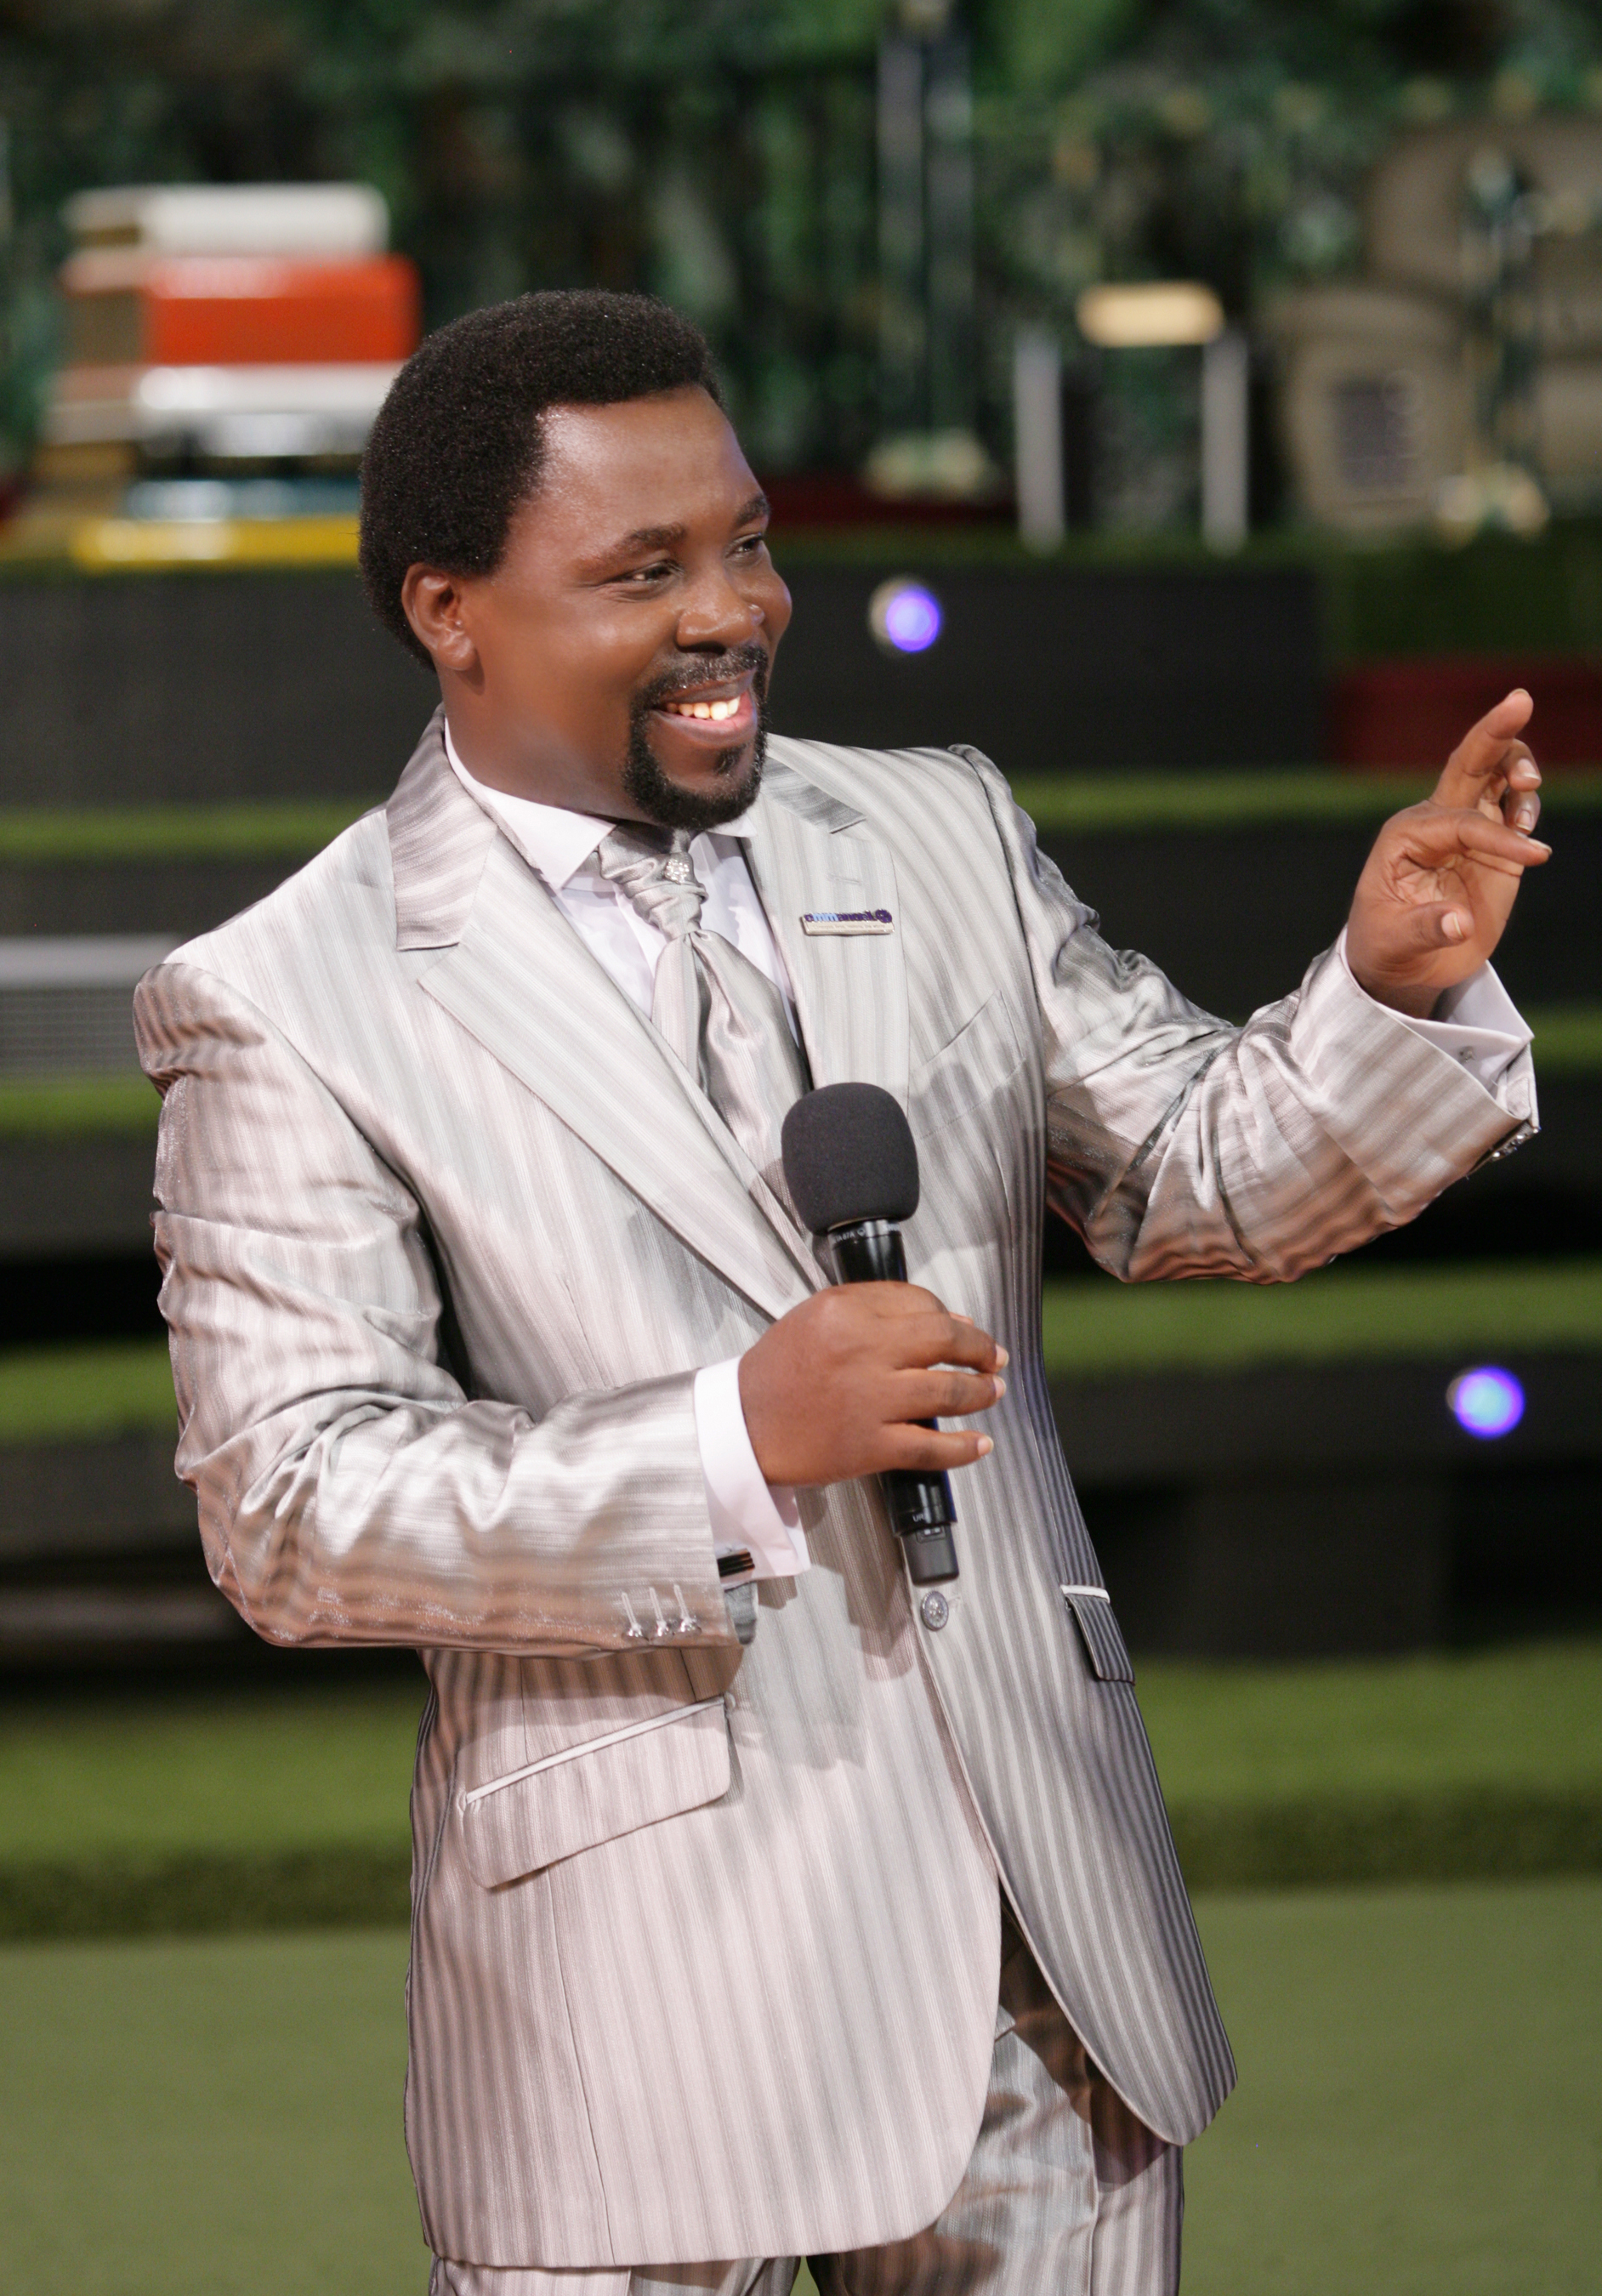 TB Joshua Biography - 'Everything Big Starts Little' - The Synagogue